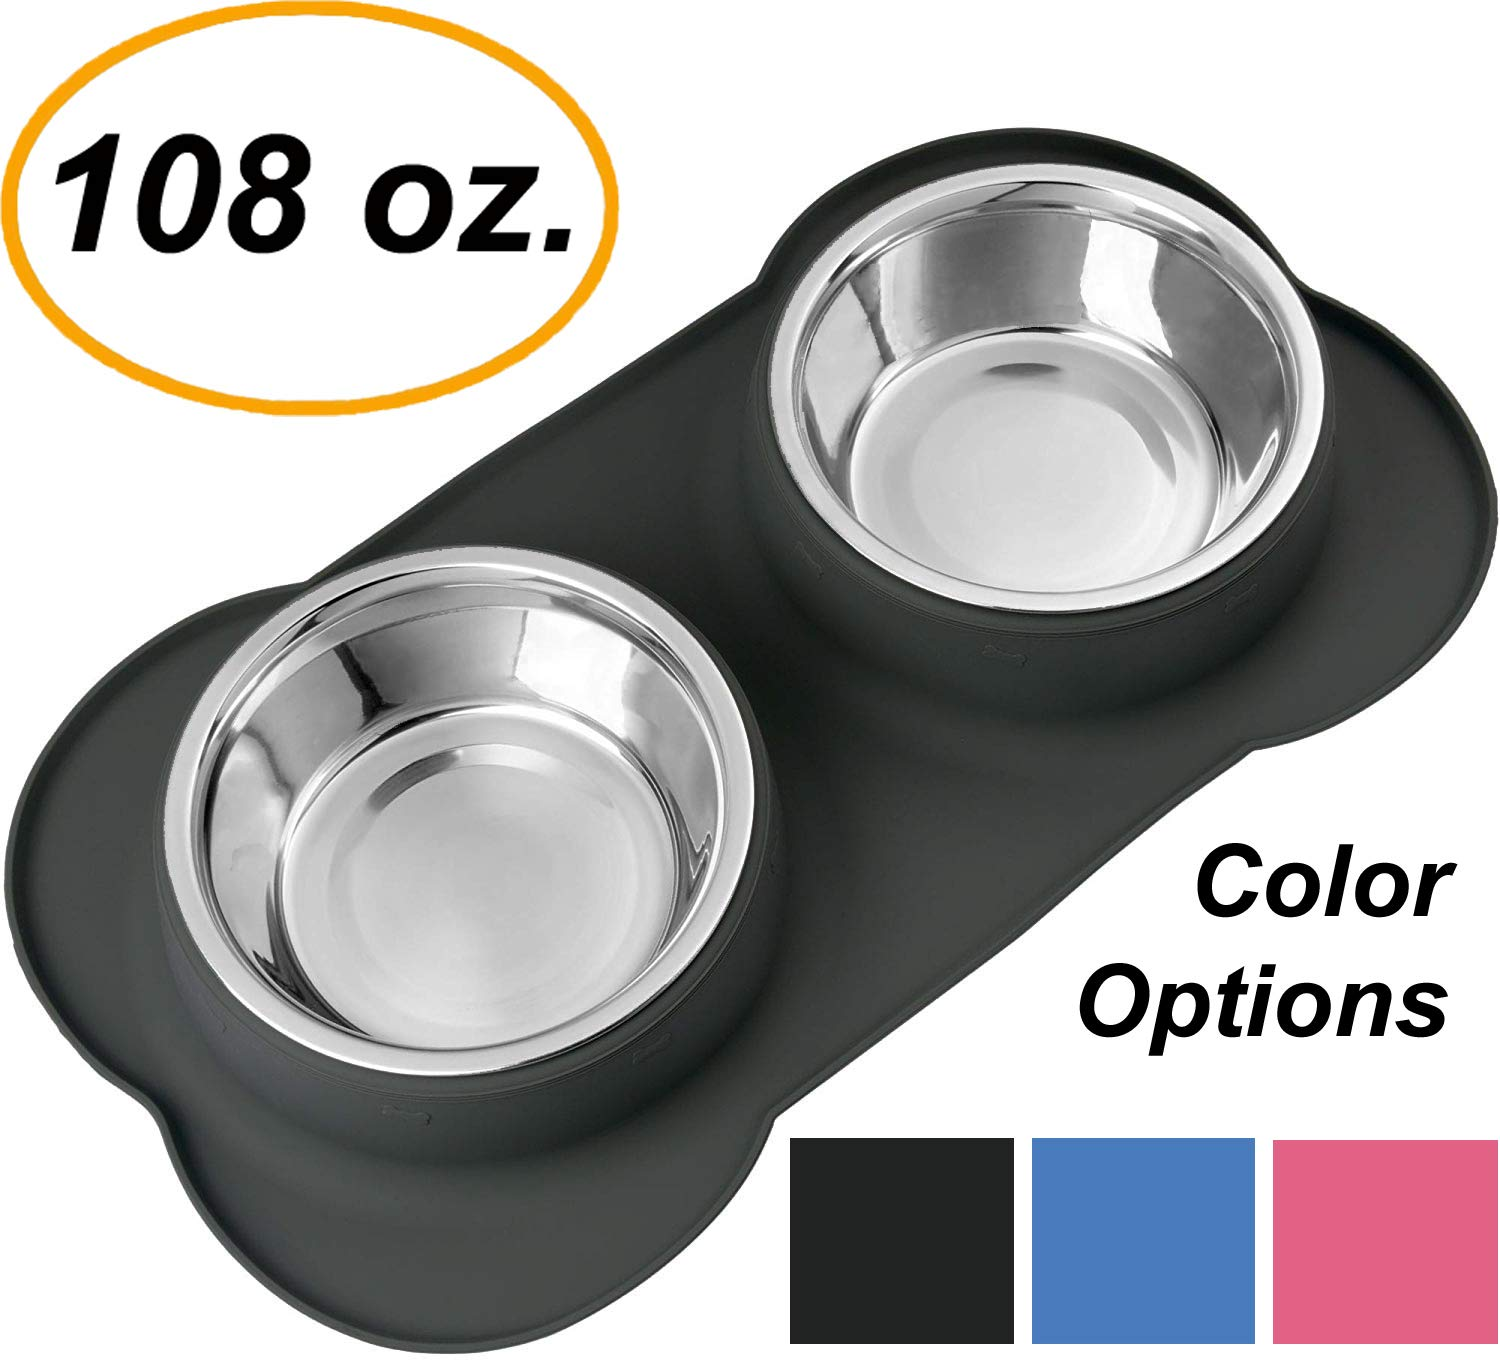 EZPETZ Large Dog Bowls - Two 54 oz. Stainless Steel Dog Bowls with No Spill Non-Skid Silicone Mat - Water Bowl and Food Bowl for Medium to Large Dogs by EZPETZ